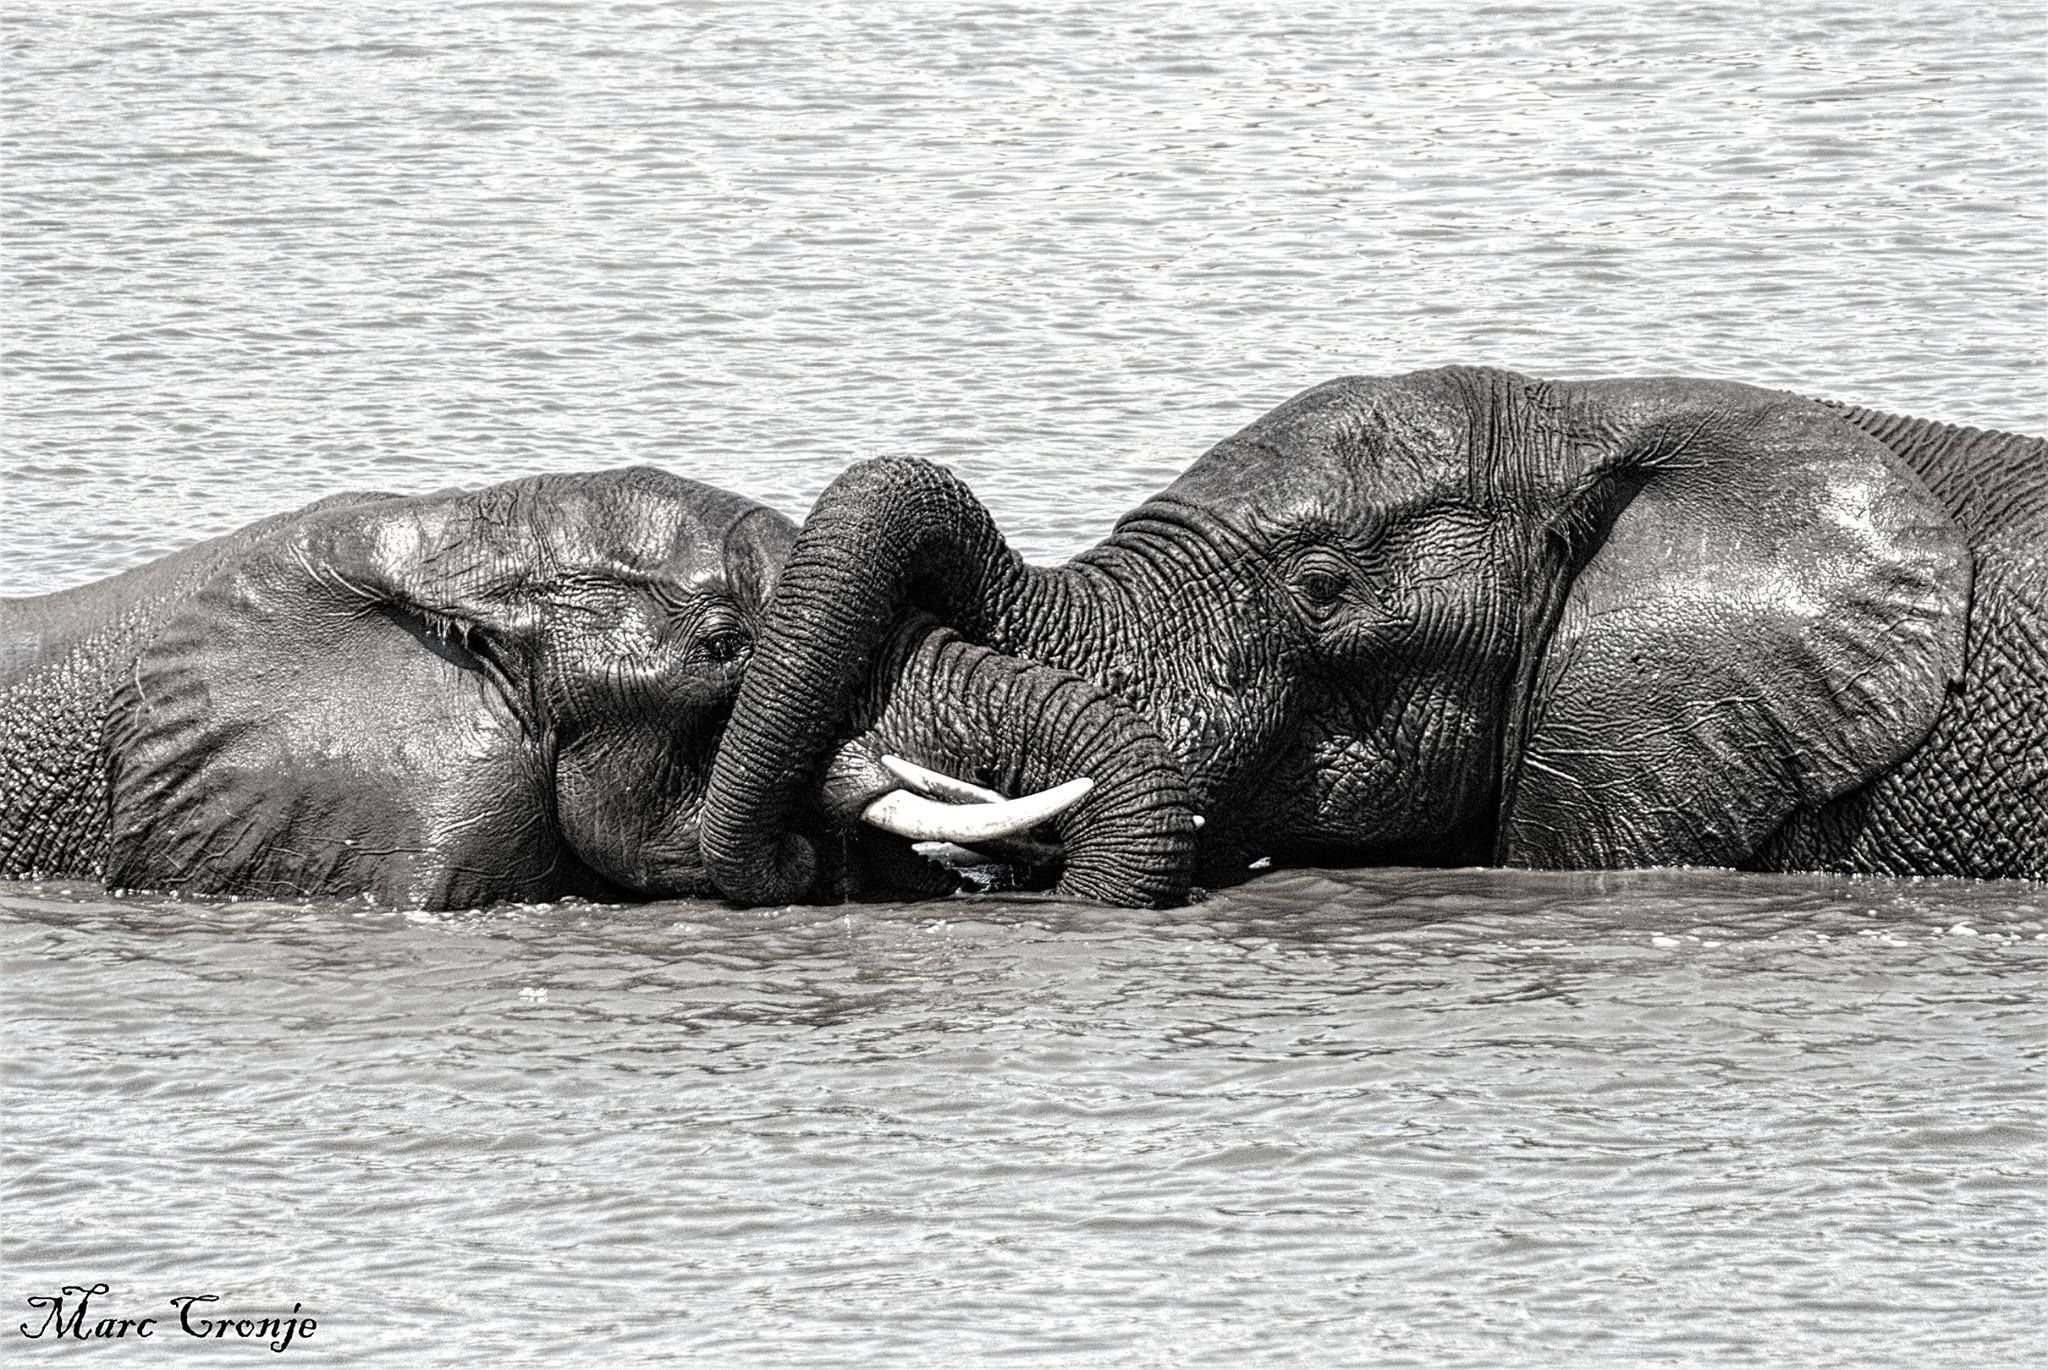 They say a sense of humor is a sign of intelligence, elephants have the largest brain of any land mammal, they love to tease and play, especially in water. Image: Thanks to  ©Marc Cronje, Field Guide,  Kruger National Park, South Africa.